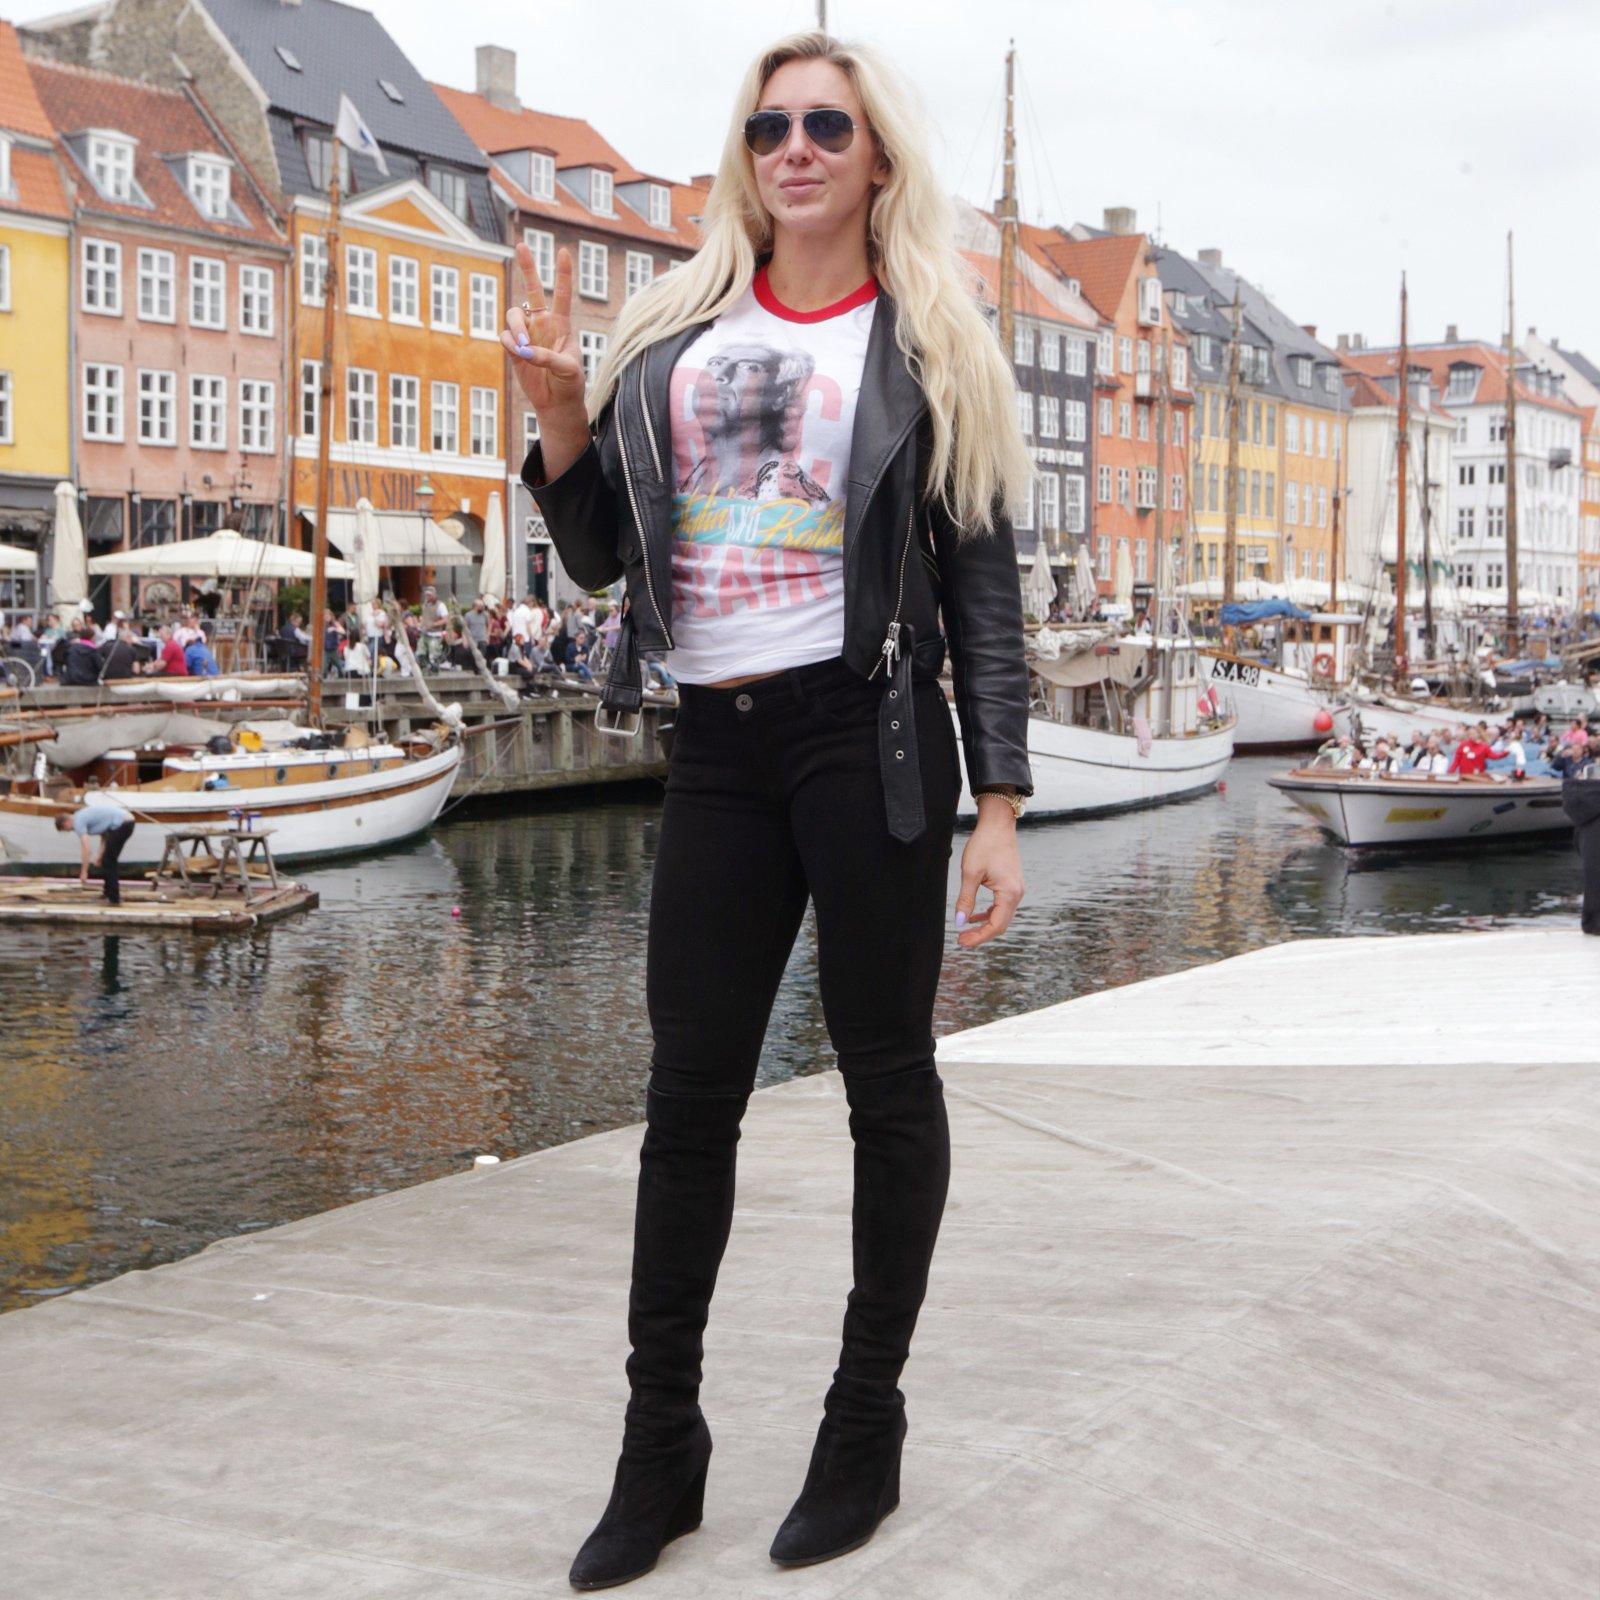 Charlotte Flair poses in front of the waterfront in Copenhagen, Denmark.